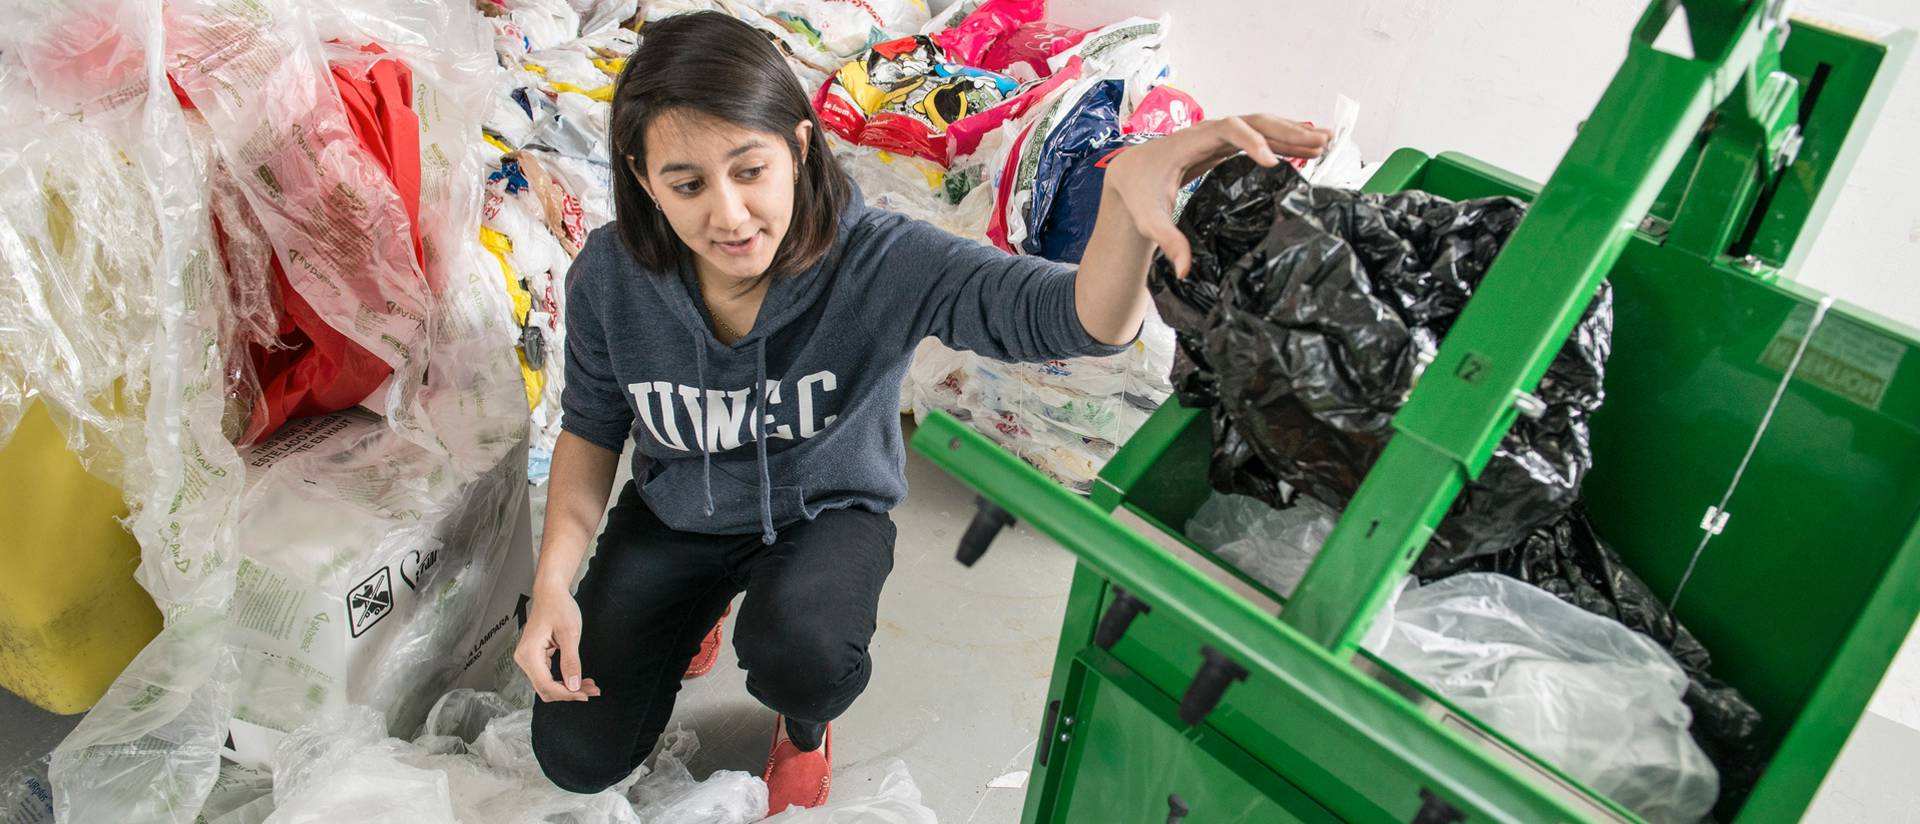 International student Amyline Sivathayalan, Malaysia, who works as a student recycler for Housing and Residence Life, sorts plastic bags and wrap and fills a machine that will bale the material so it can be recycled. She has made over 55 bales since fall.